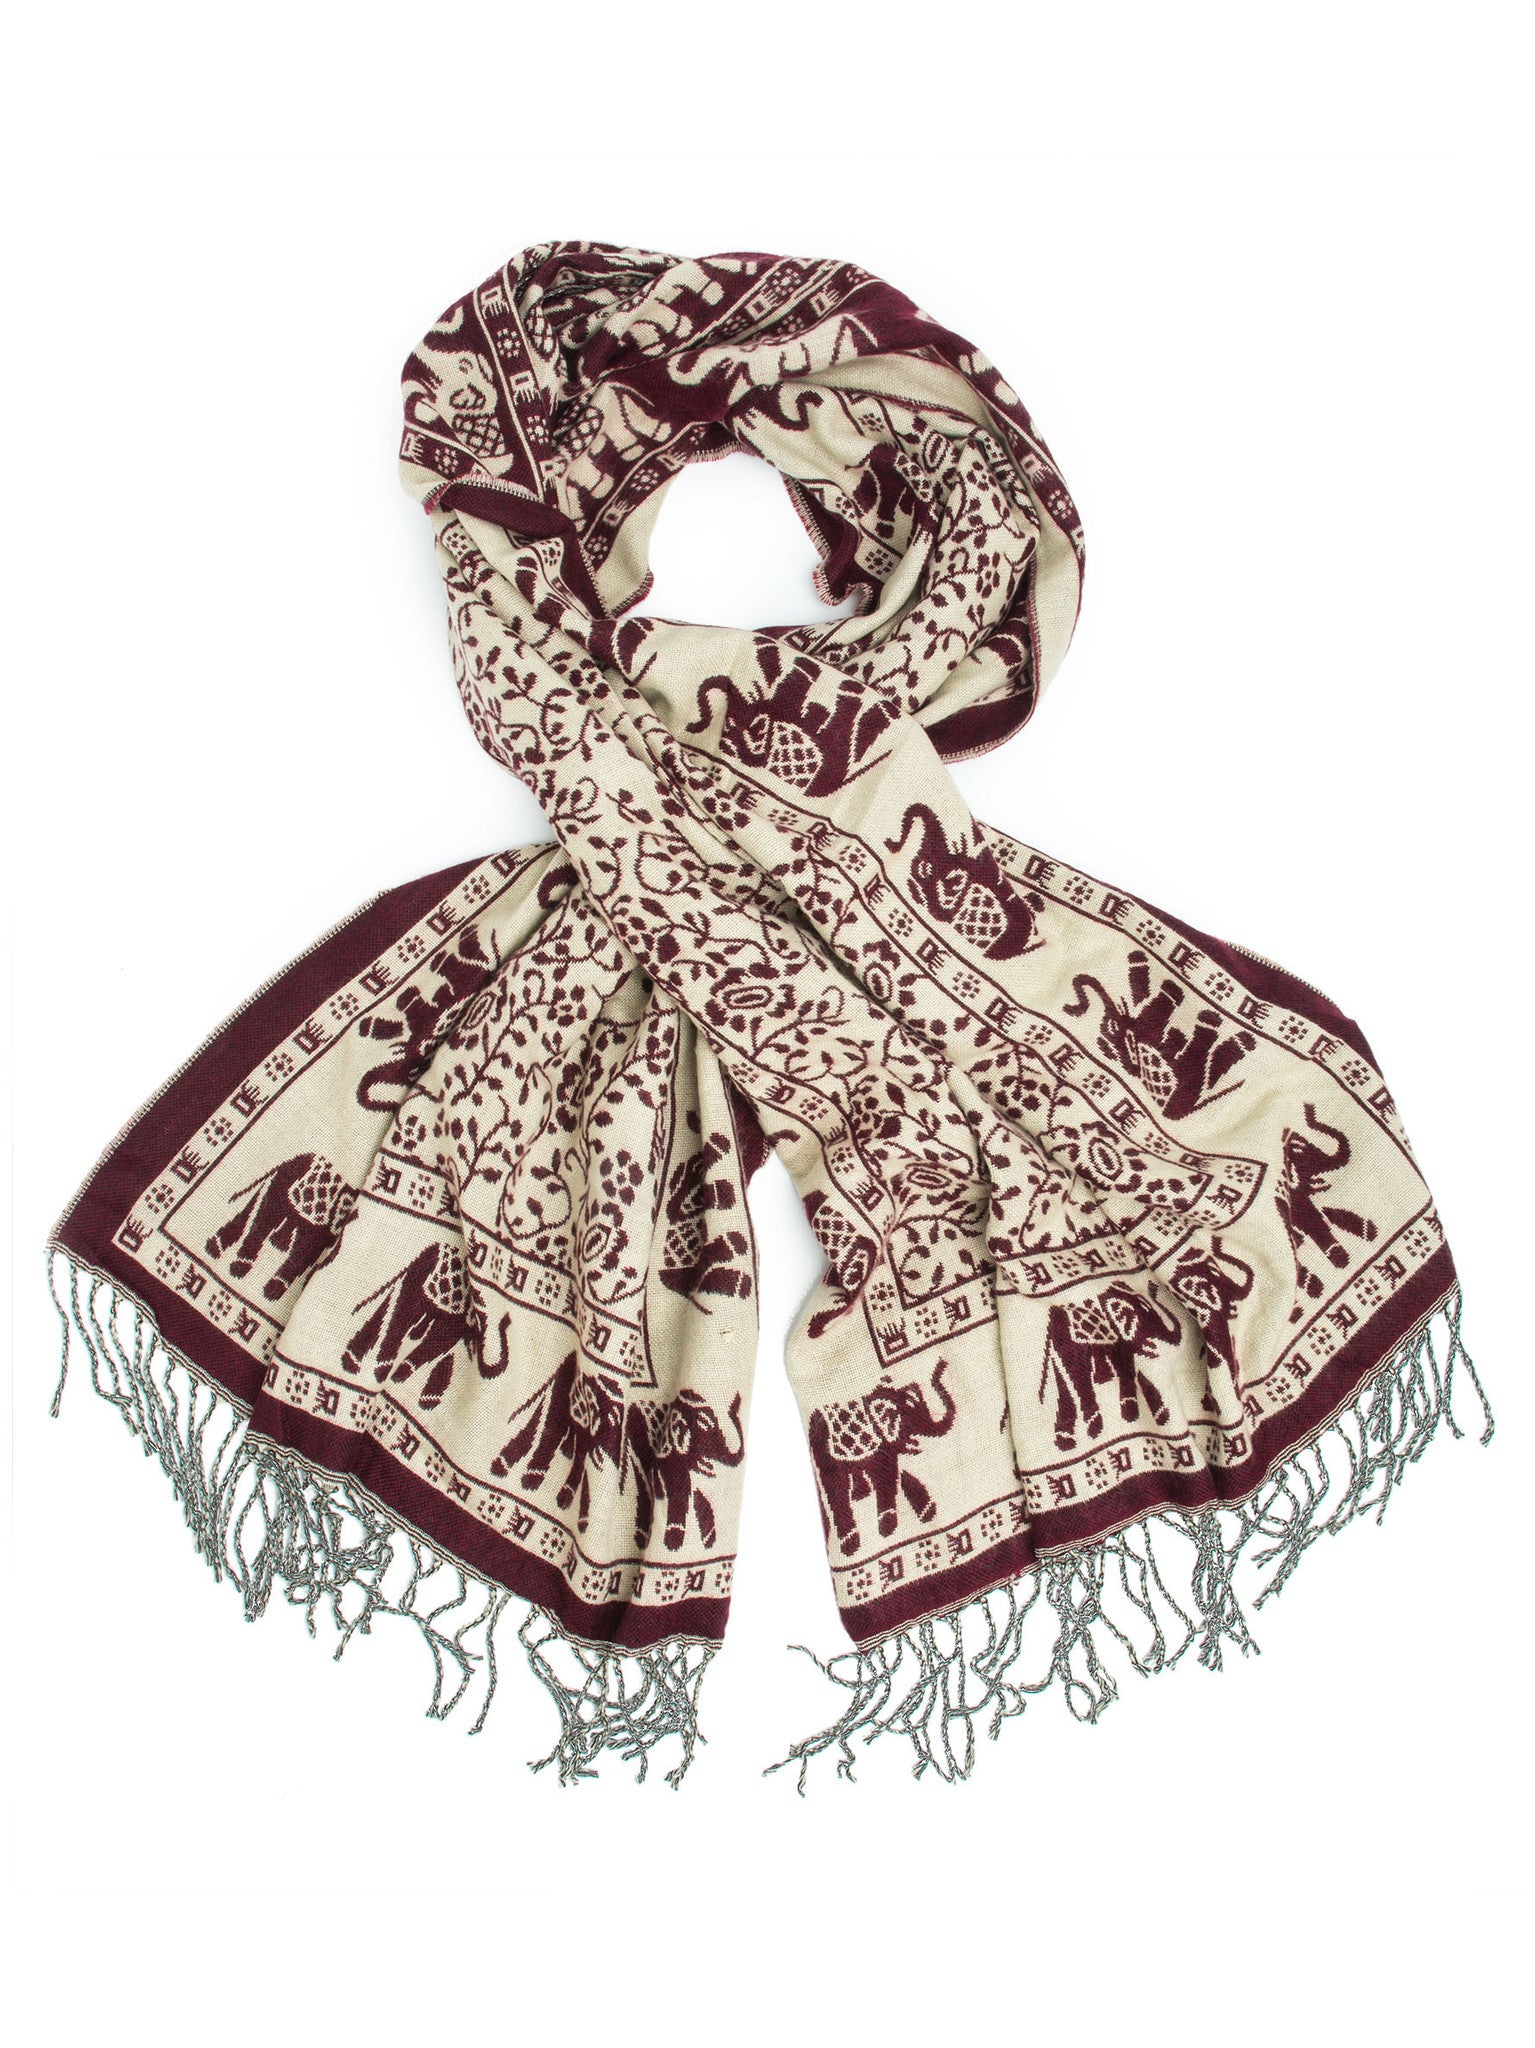 Scarves - Hathi Winter Blanket Scarf, Woven Indian Elephant Design -() Bohomonde  - 8